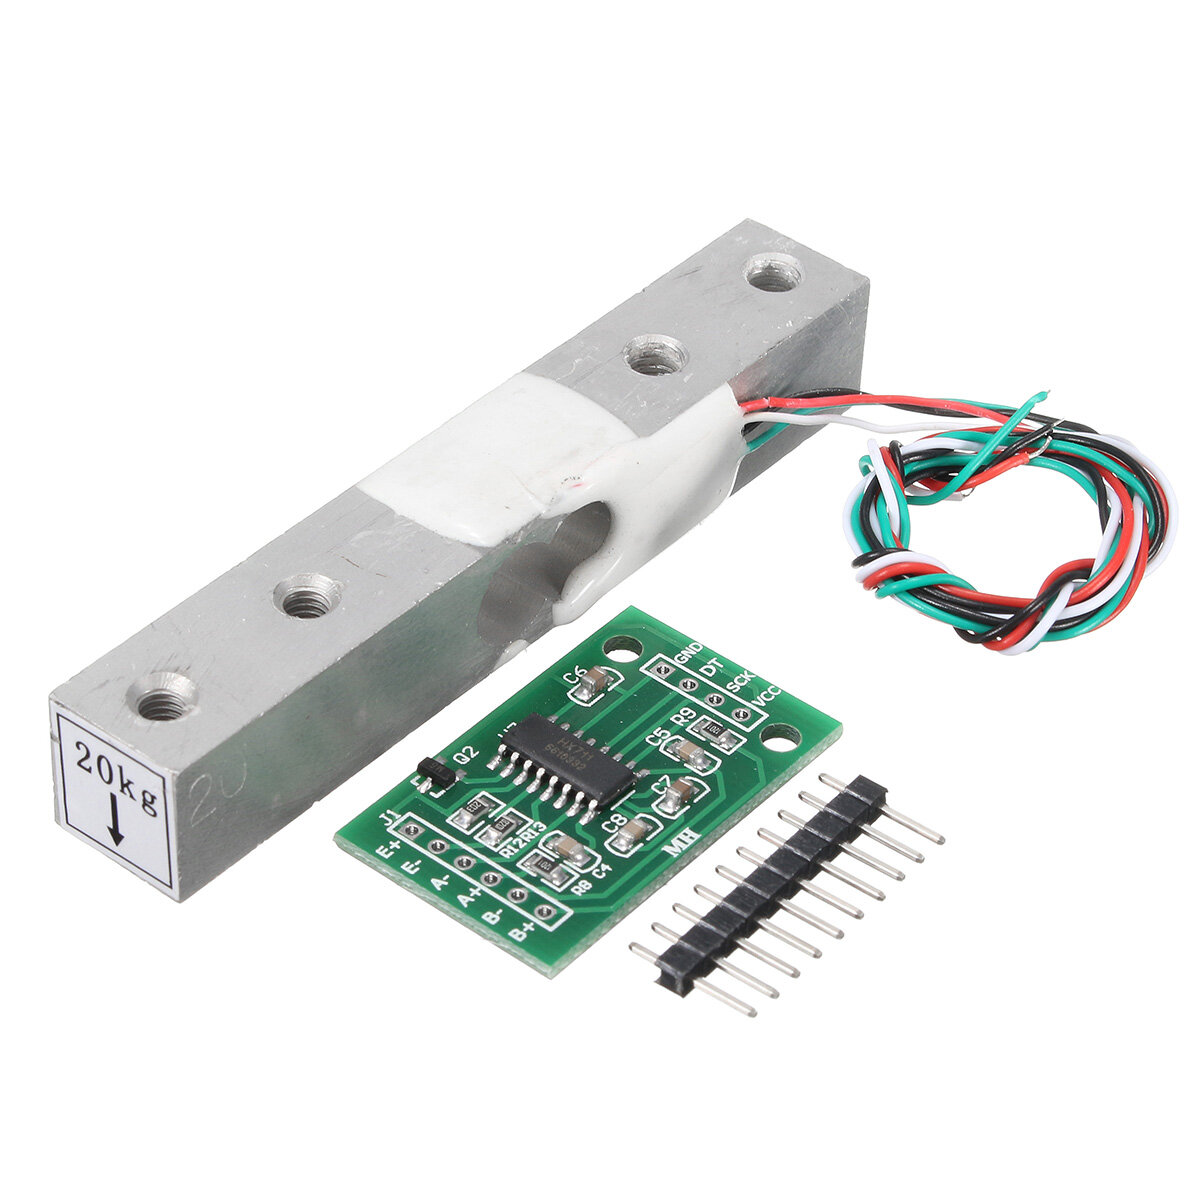 Hx711 Module 20kg Aluminum Alloy Scale Weighing Sensor Load Cell Interface Circuit Kit For Arduino